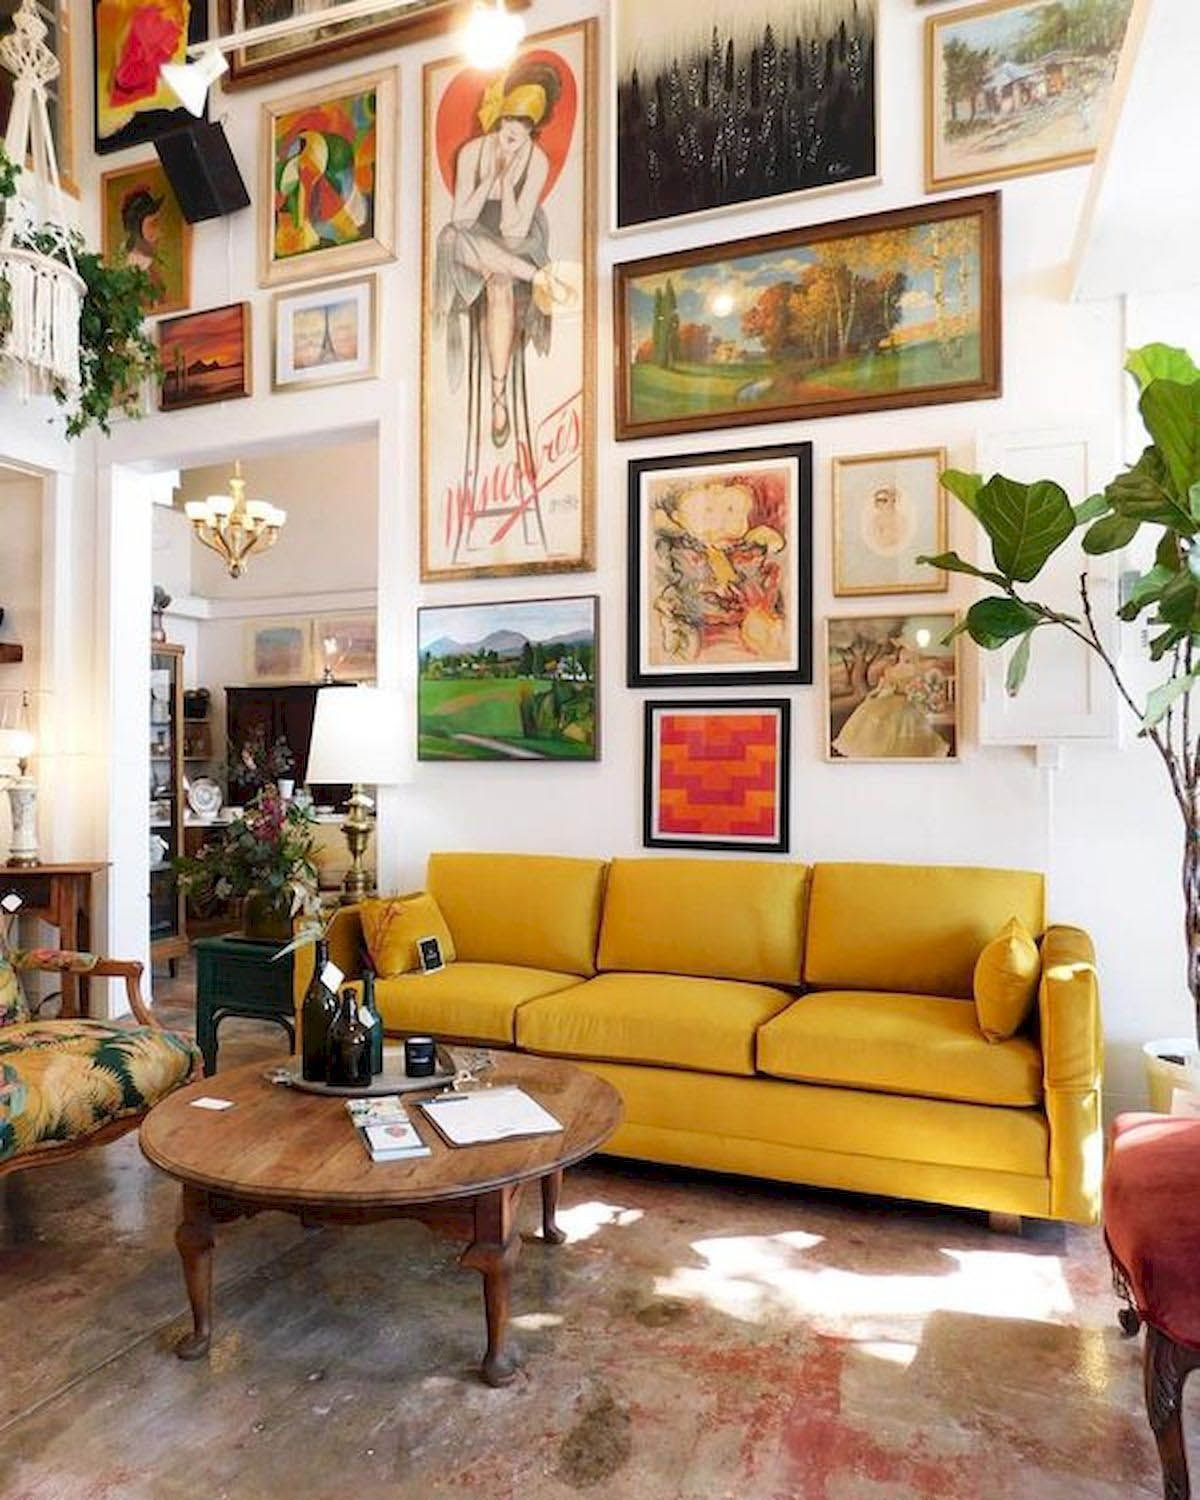 Staying Space Wall Design Concepts So You May Finally Pack That Empty Area Small Living Room Decor Buy Home Furniture Retro Home Decor #wall #art #decor #ideas #living #room